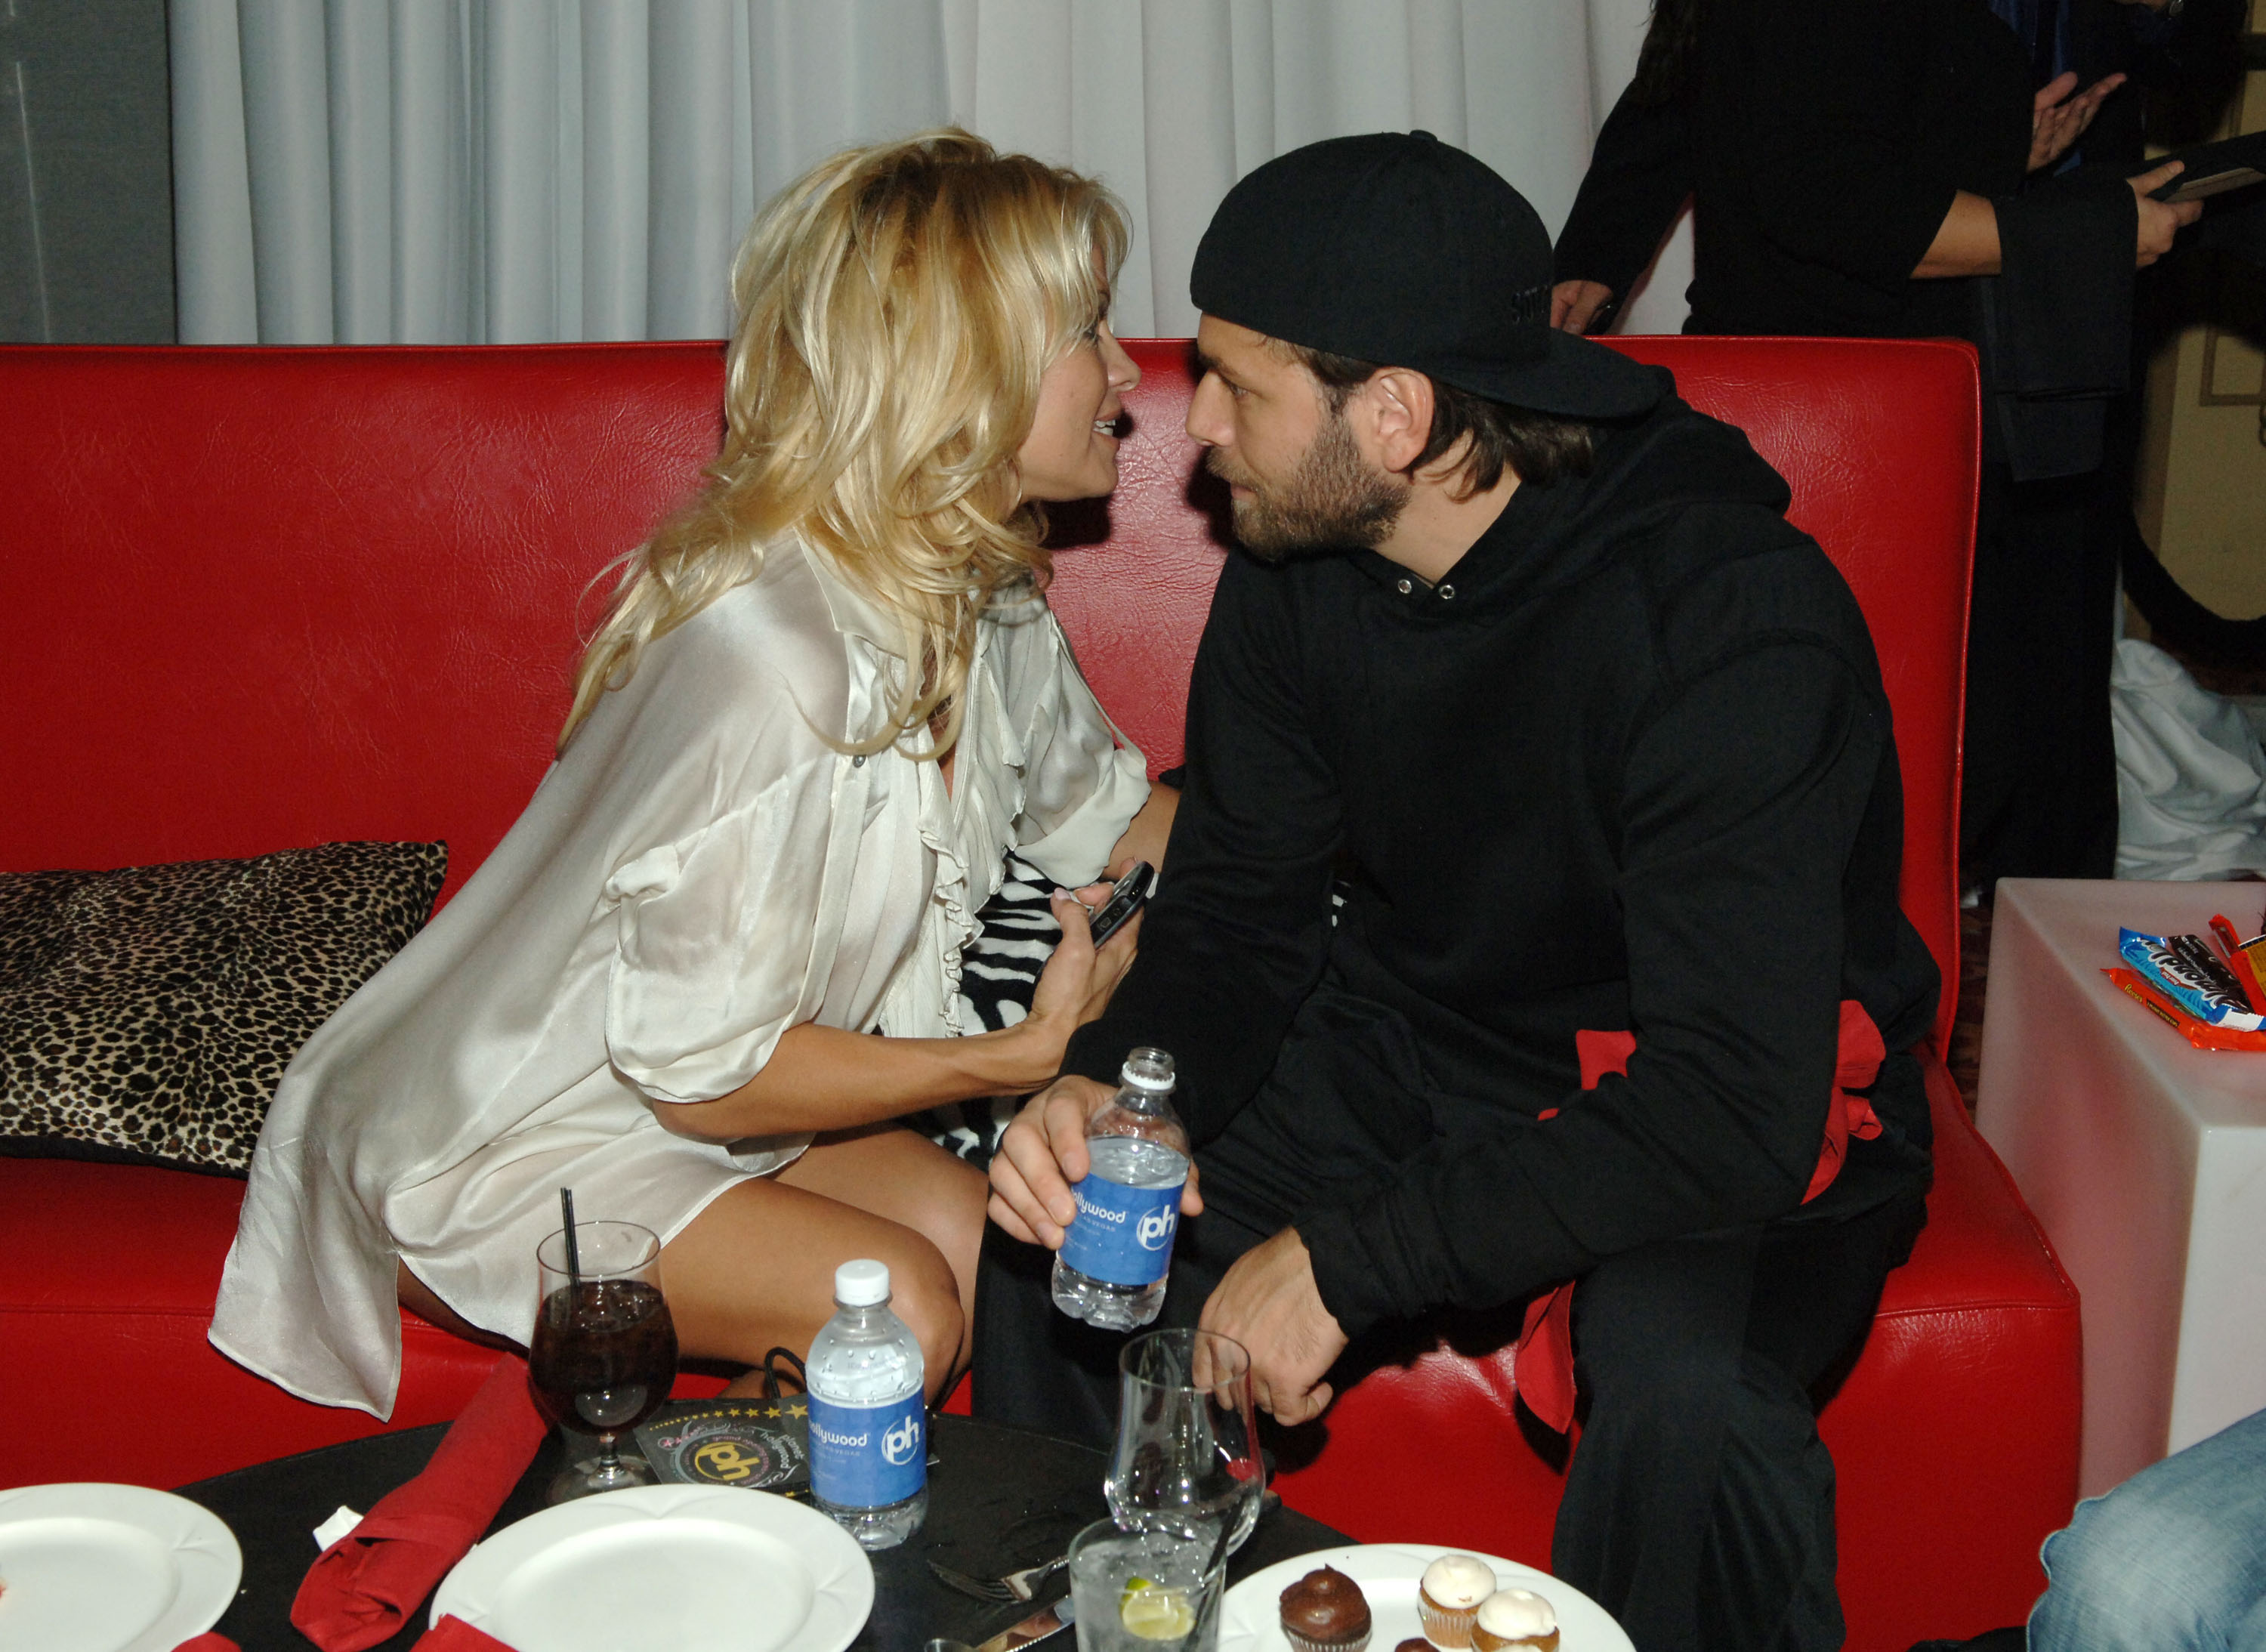 LAS VEGAS - NOVEMBER 16:  Actress Pamela Anderson and Rick Salomon at Planet Hollywood Resort & Casino's Grand Opening Weekend on November 16, 2007 in Las Vegas, Nevada.  (Photo by Denise Truscello/WireImage)